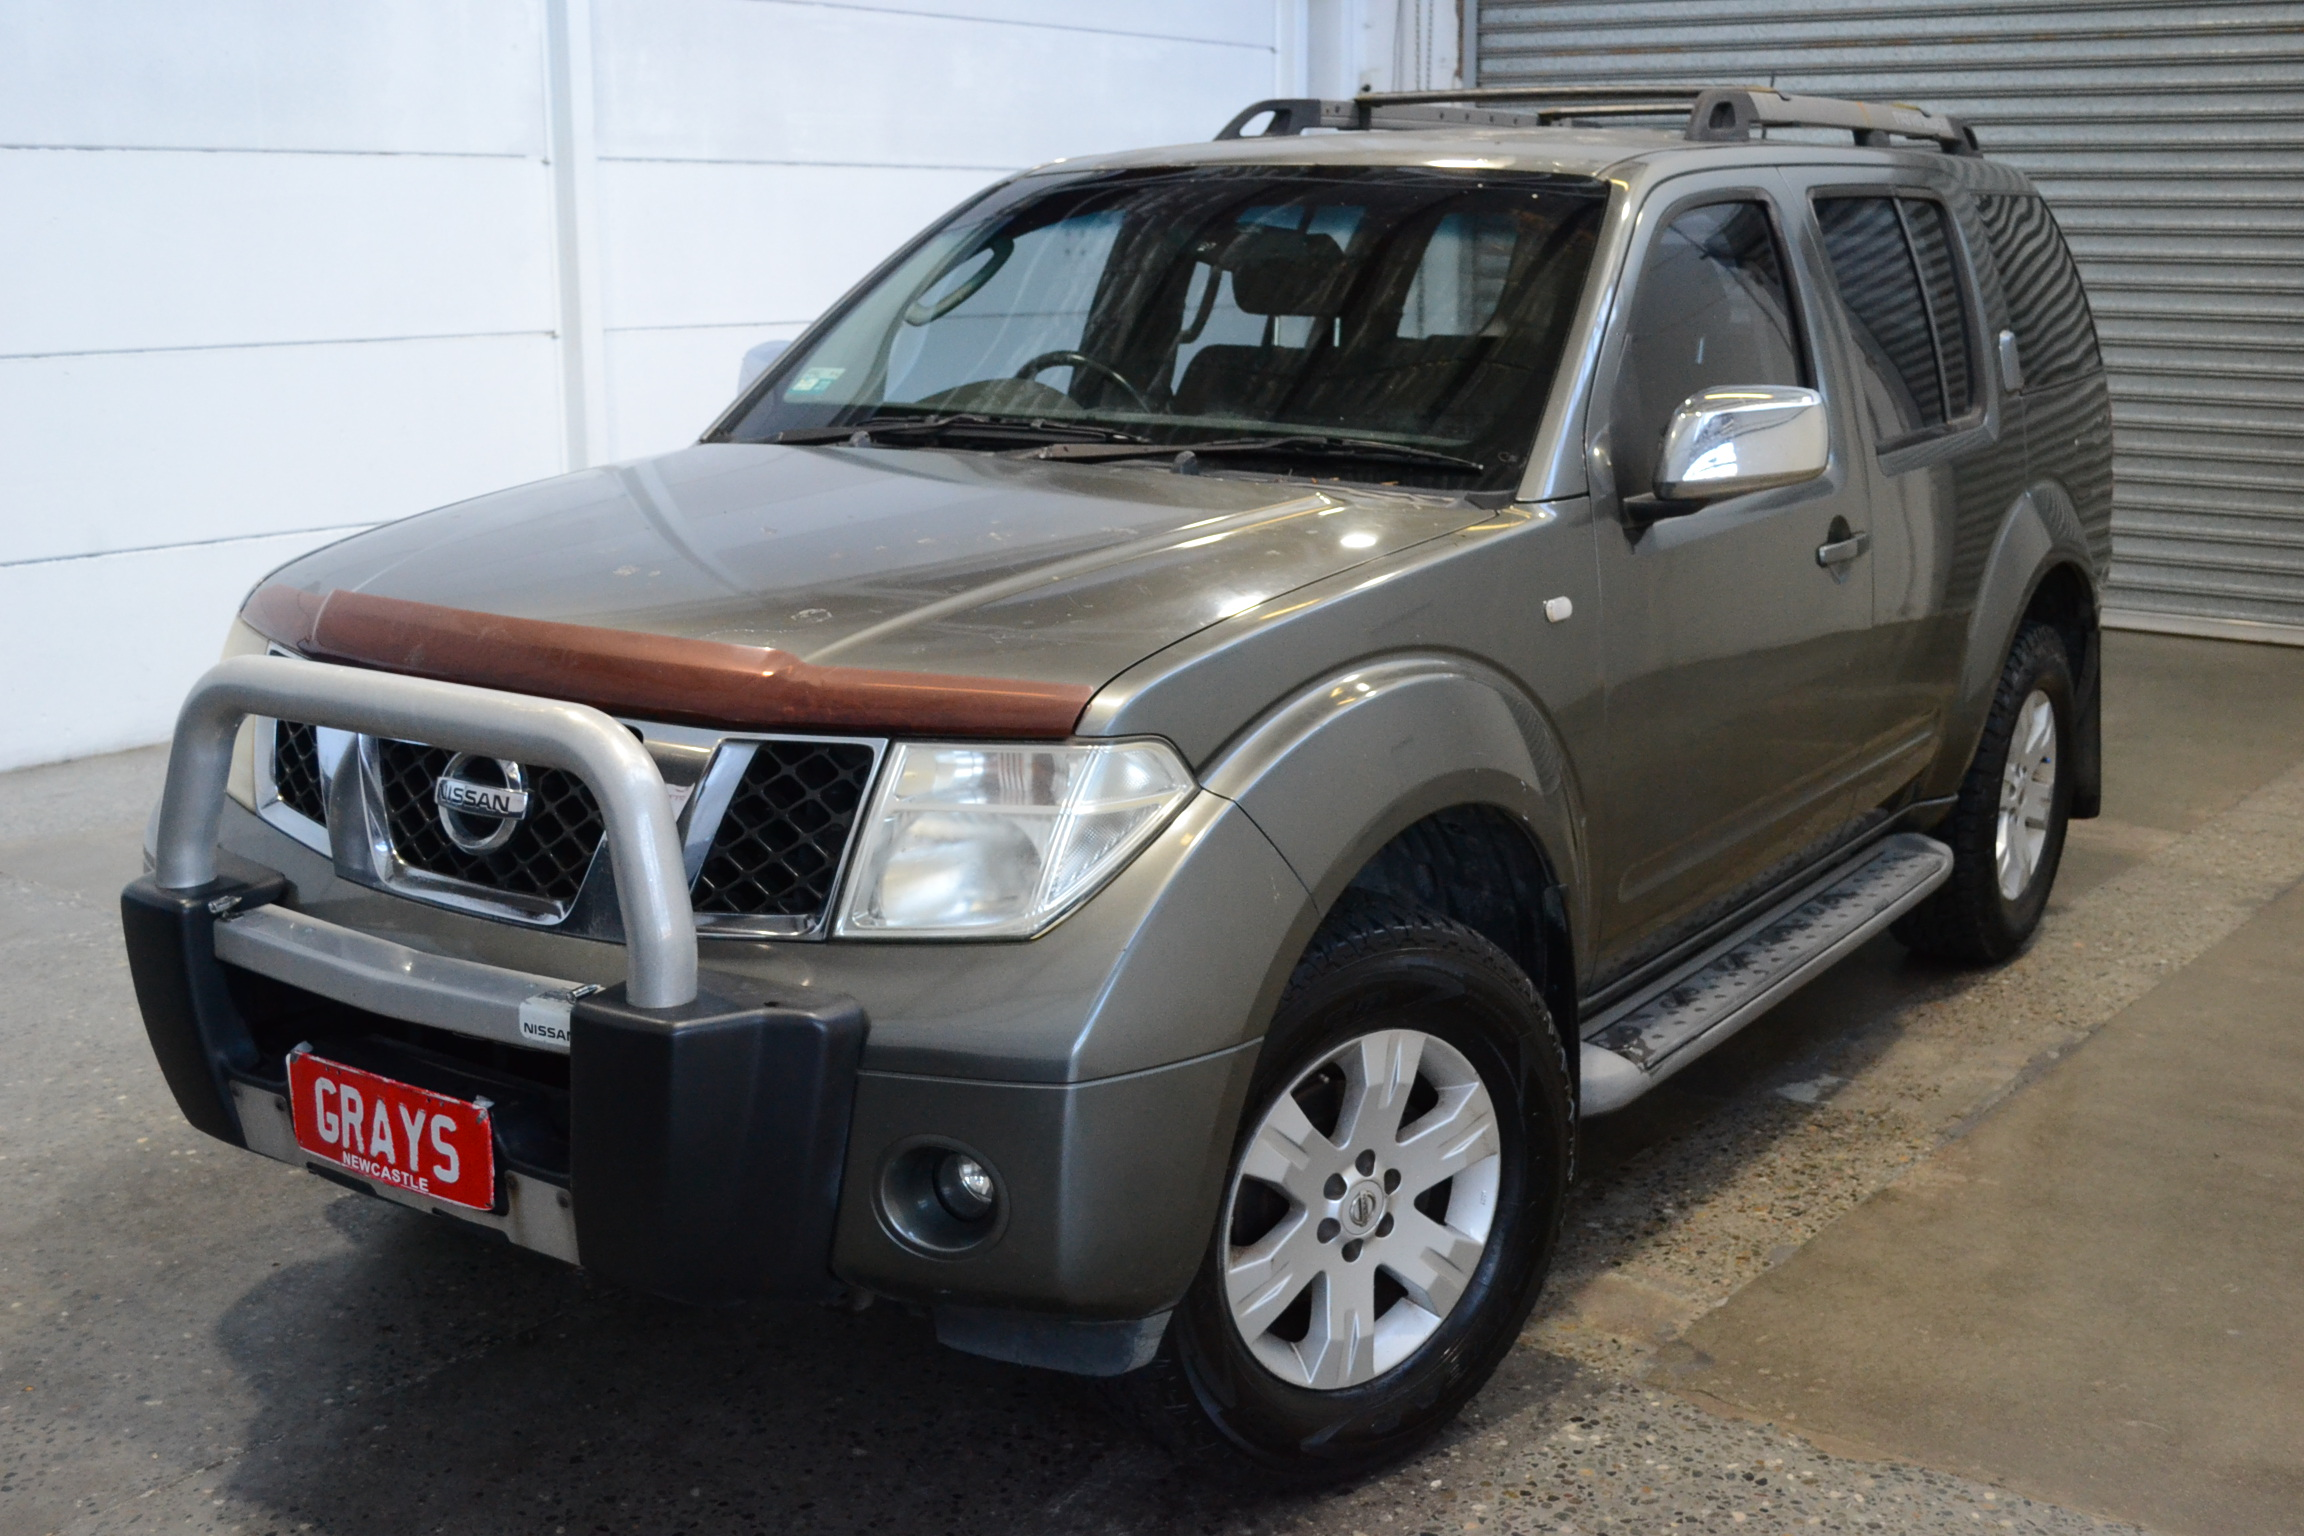 Nissan Pathfinder ST-L (4x4) R51 Manual 7 Seats Wagon